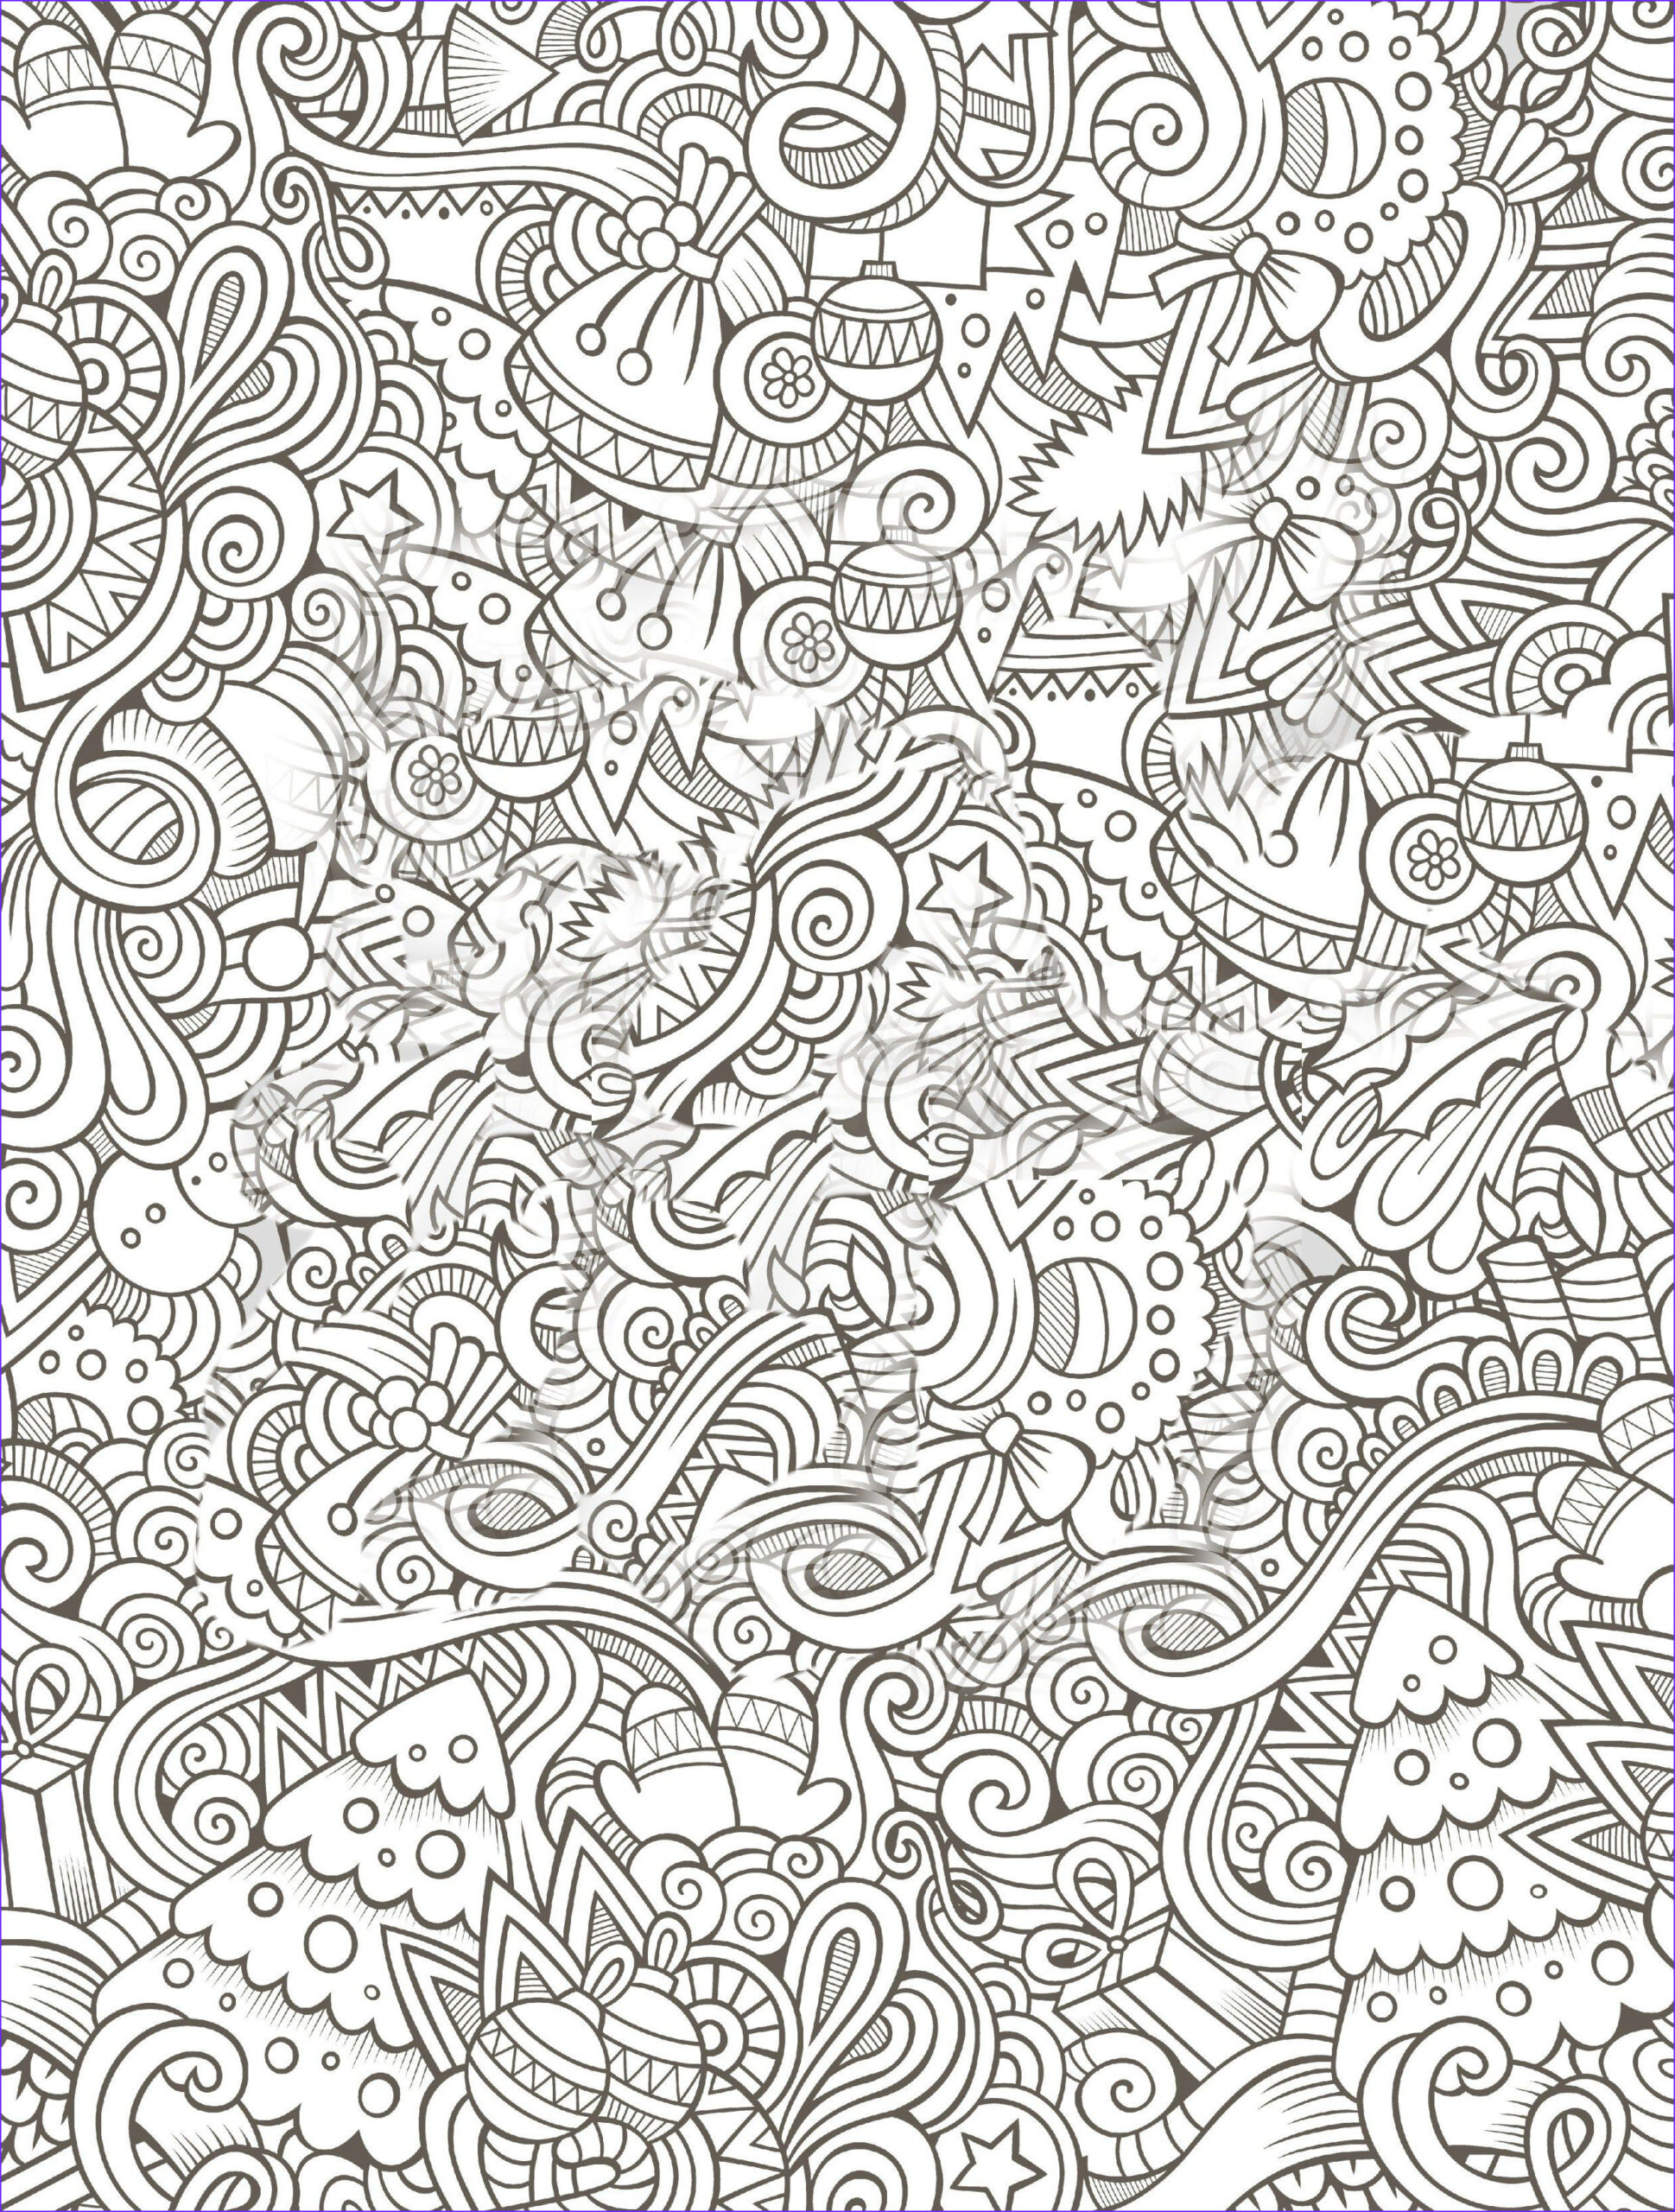 Coloring Book for Adults Christmas Luxury Image 10 Free Printable Holiday Adult Coloring Pages